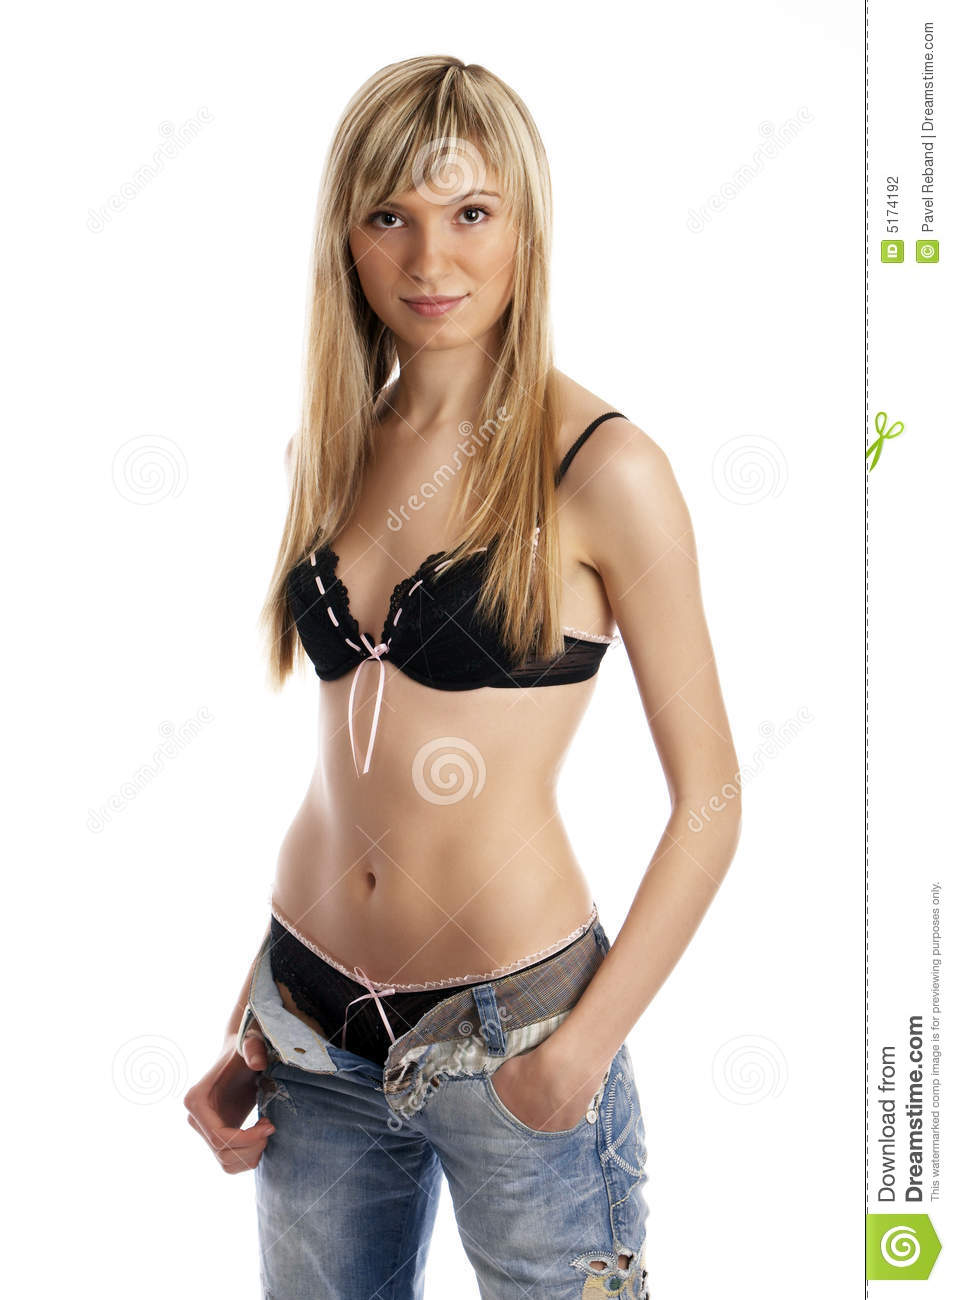 underwear model undressing stock photo. image of looking - 5174192